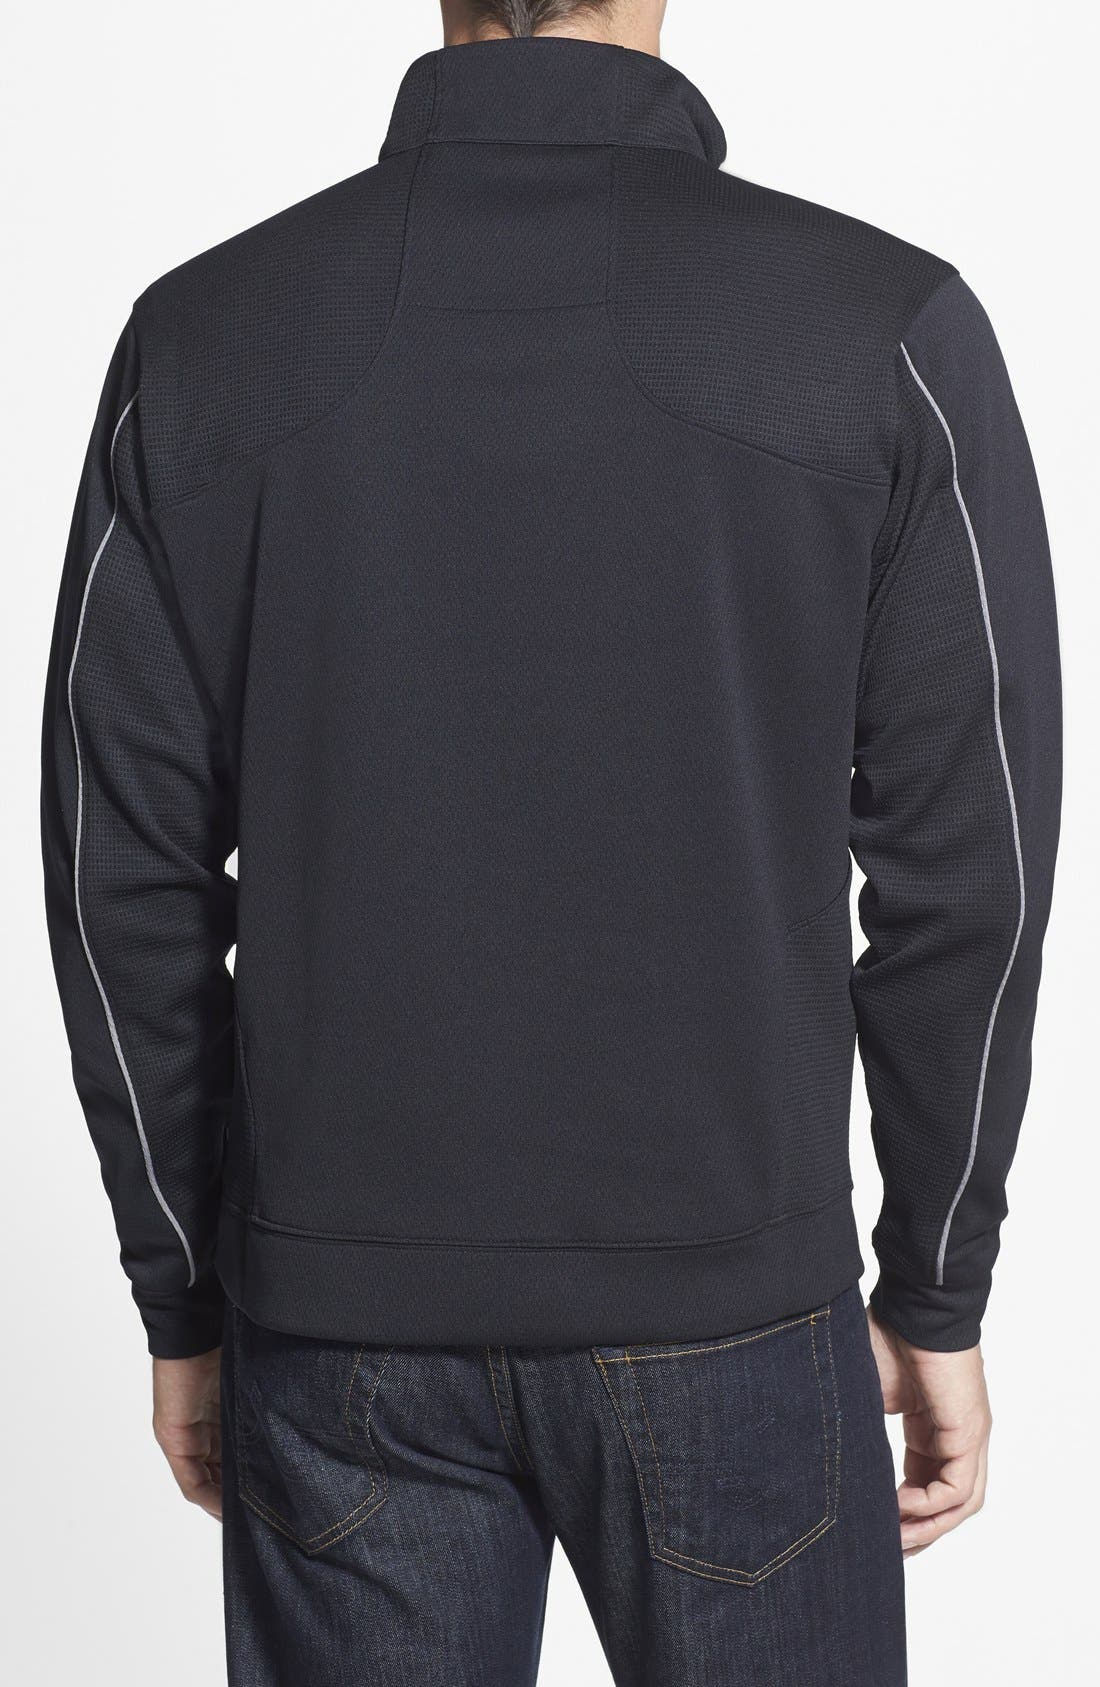 Alternate Image 2  - Cutter & Buck New York Jets - Edge DryTec Moisture Wicking Half Zip Pullover